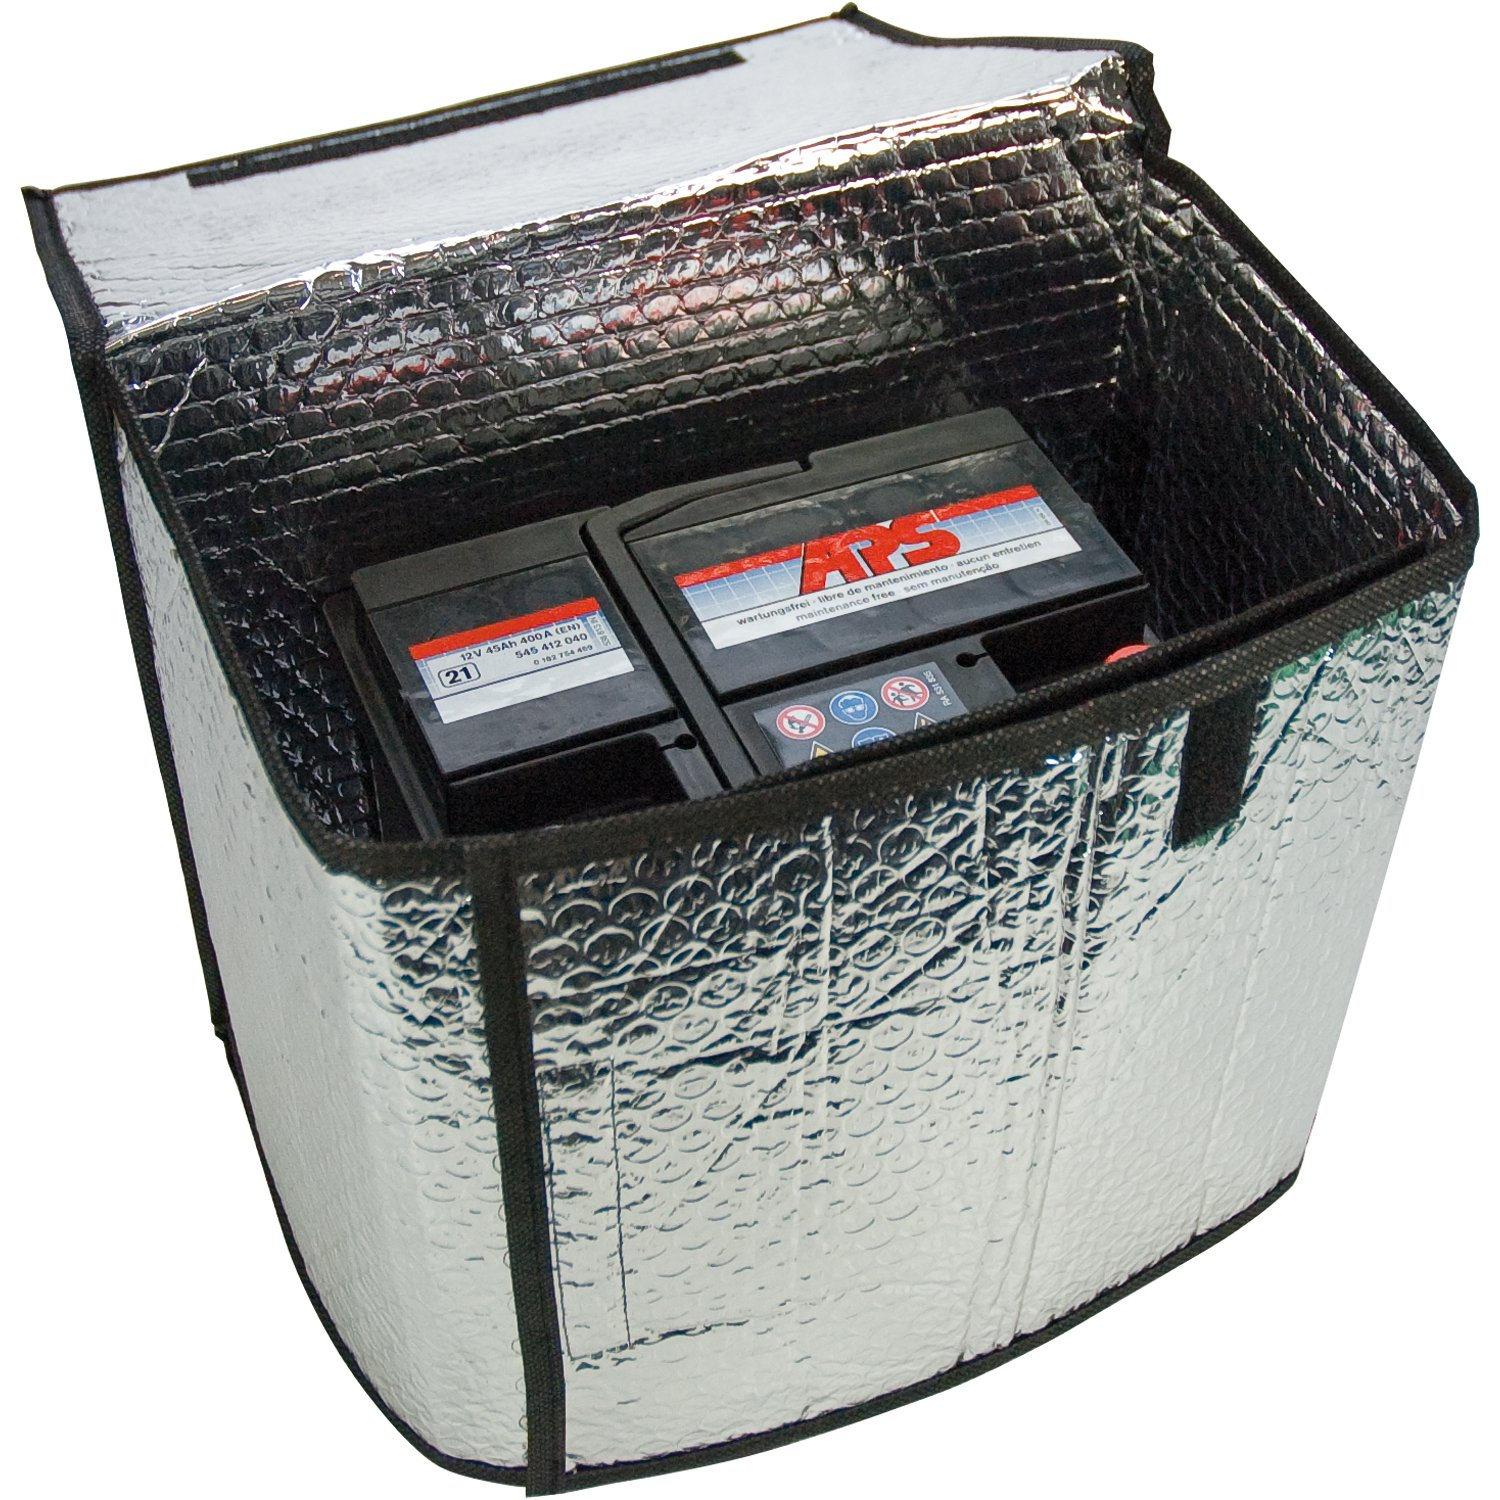 115 x 74 cm dimensions approx Cartrend 96144 Thermal battery case suitable for 32-45 Ah maintains function of starter batteries at extremely low temperatures